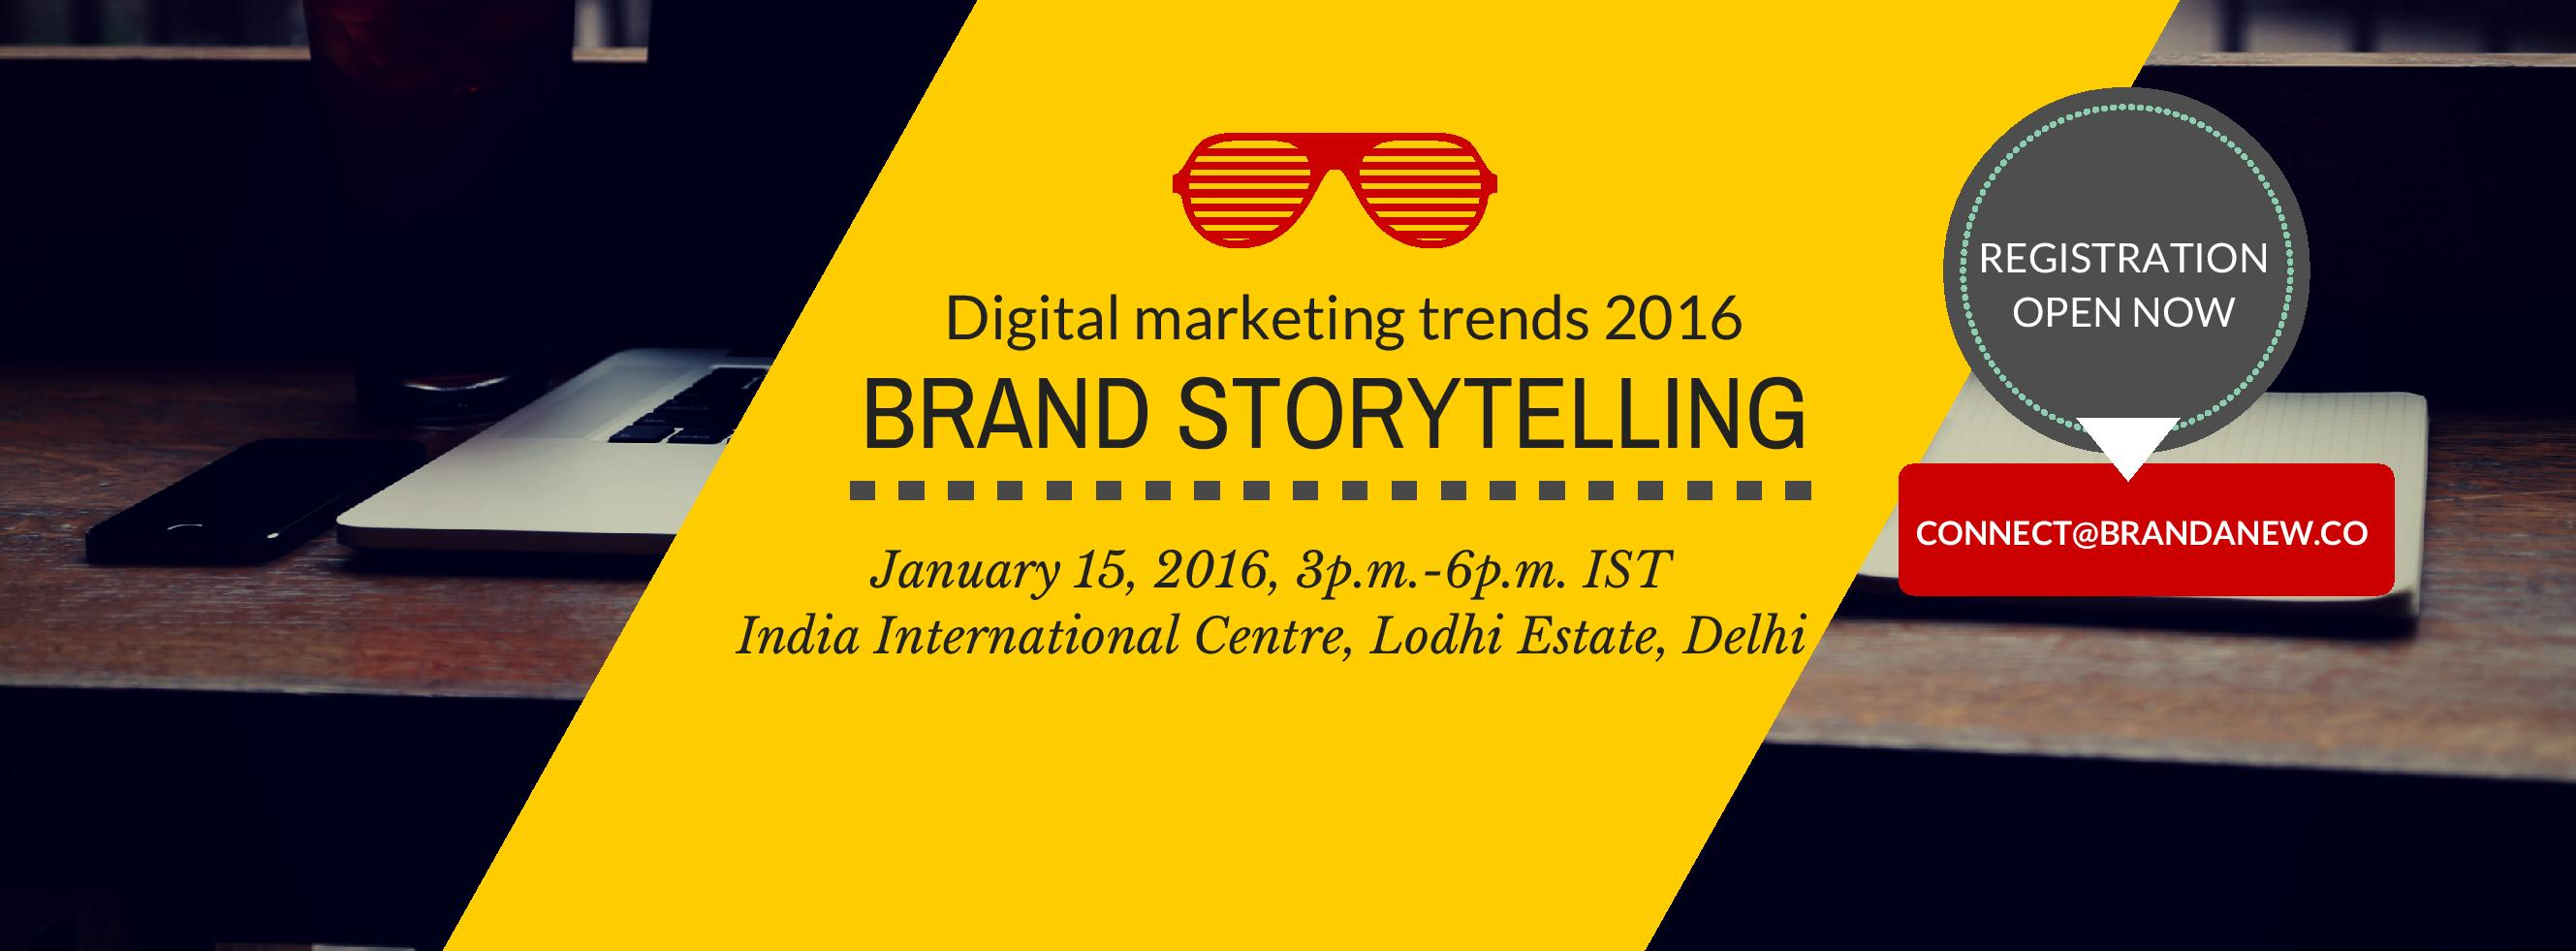 brandanew.co invites you for 2016's first Digital Marketing trends brand storytelling workshop